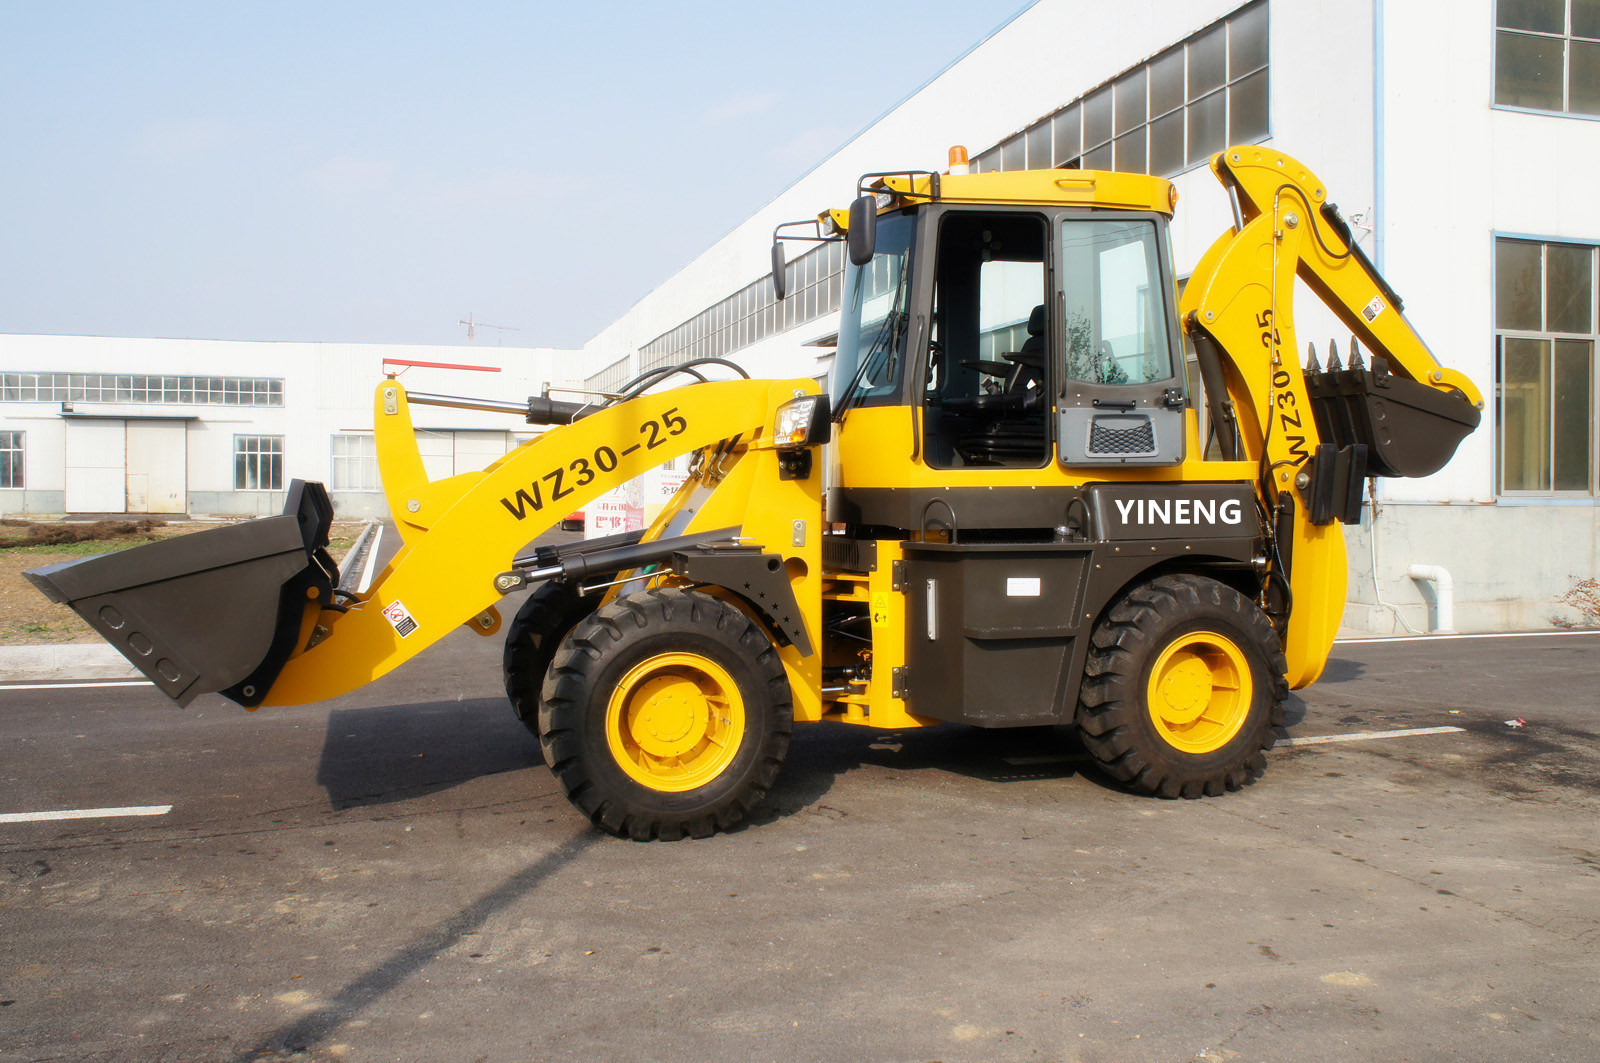 Backhoe Wz30-25 Wheel Loader Yineng